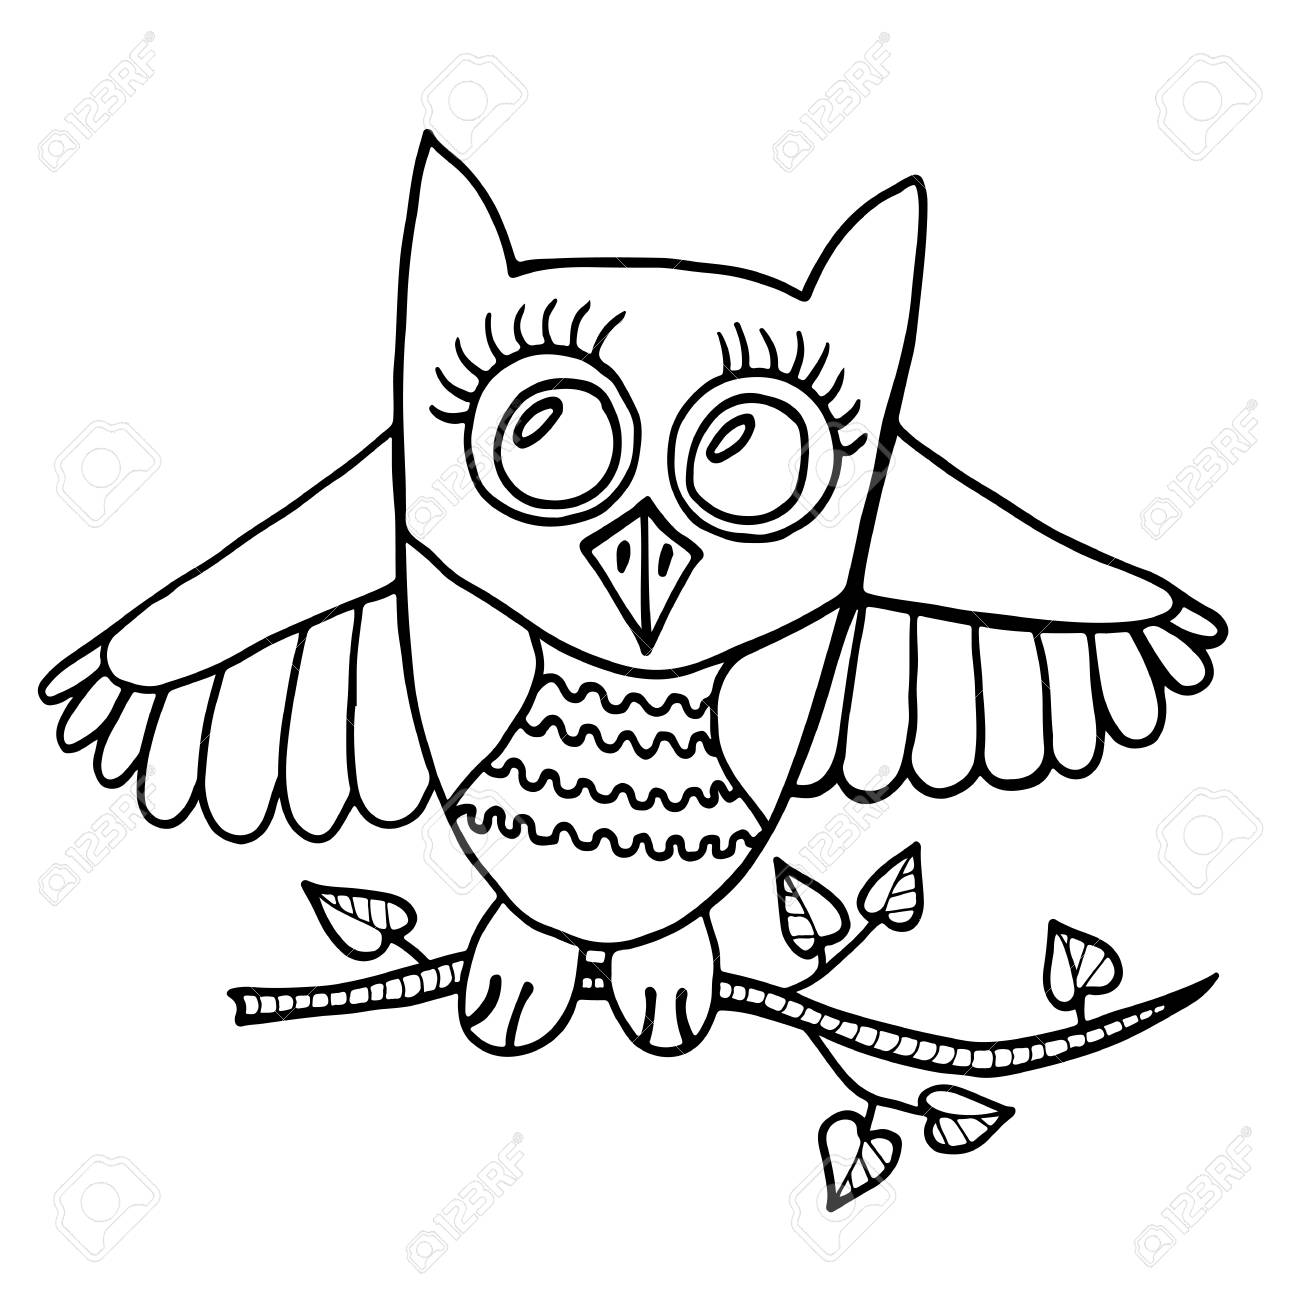 Cute owl sits on a branch with leaves. Picture for adult coloring book page  design ec073b50955a